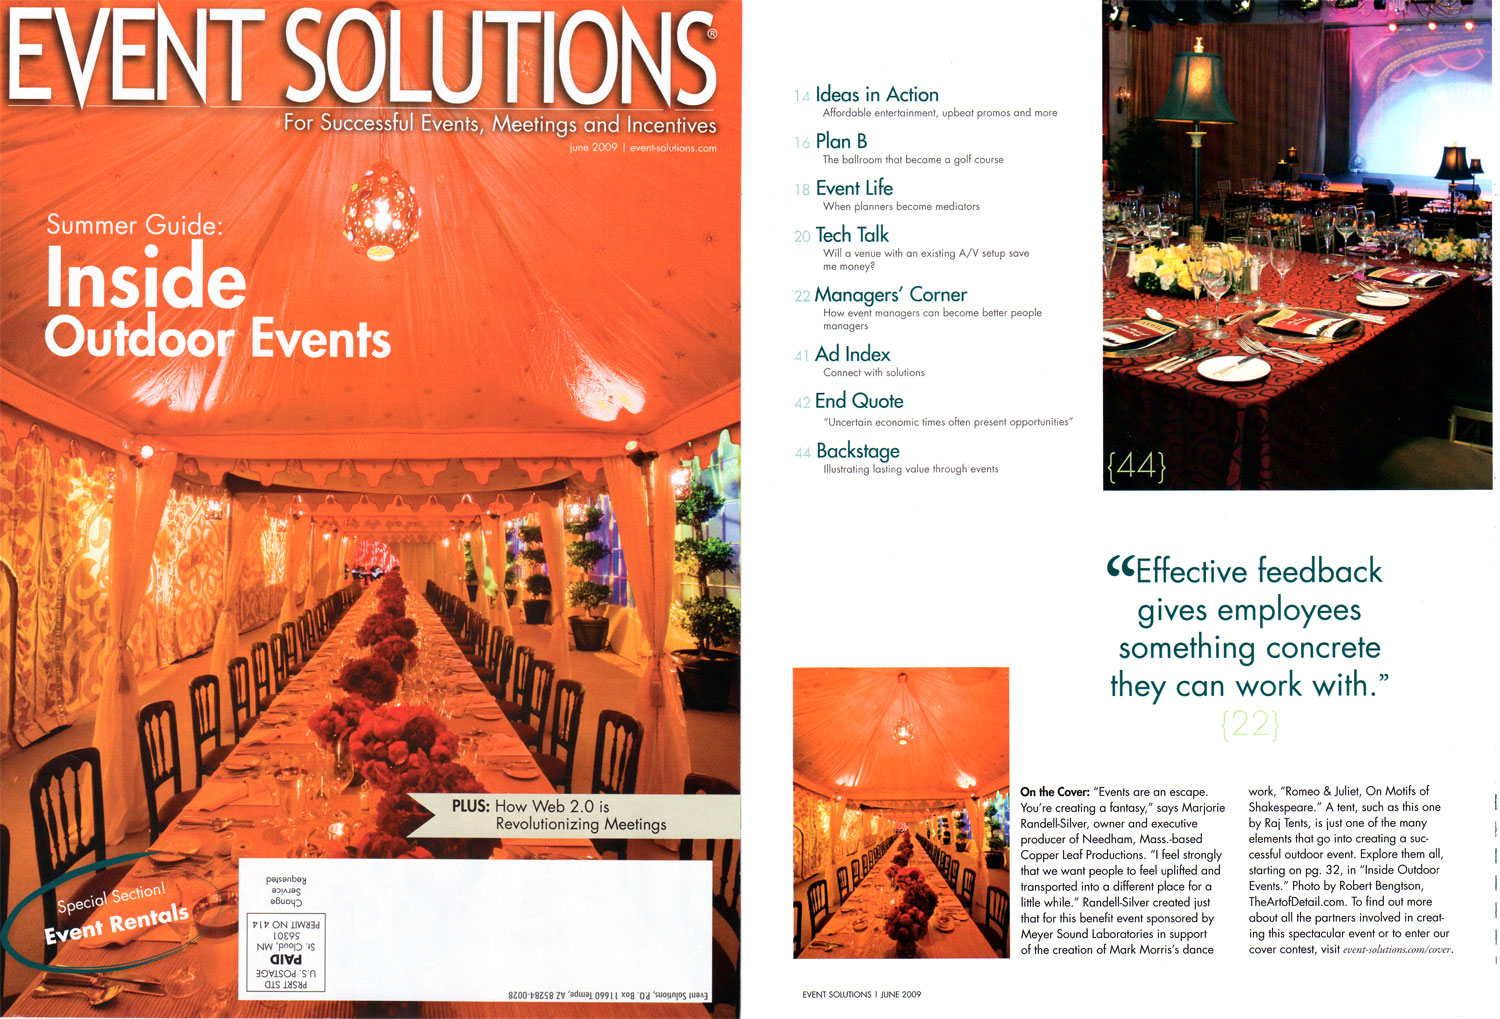 raj-tents-event-solutions-2009.jpg